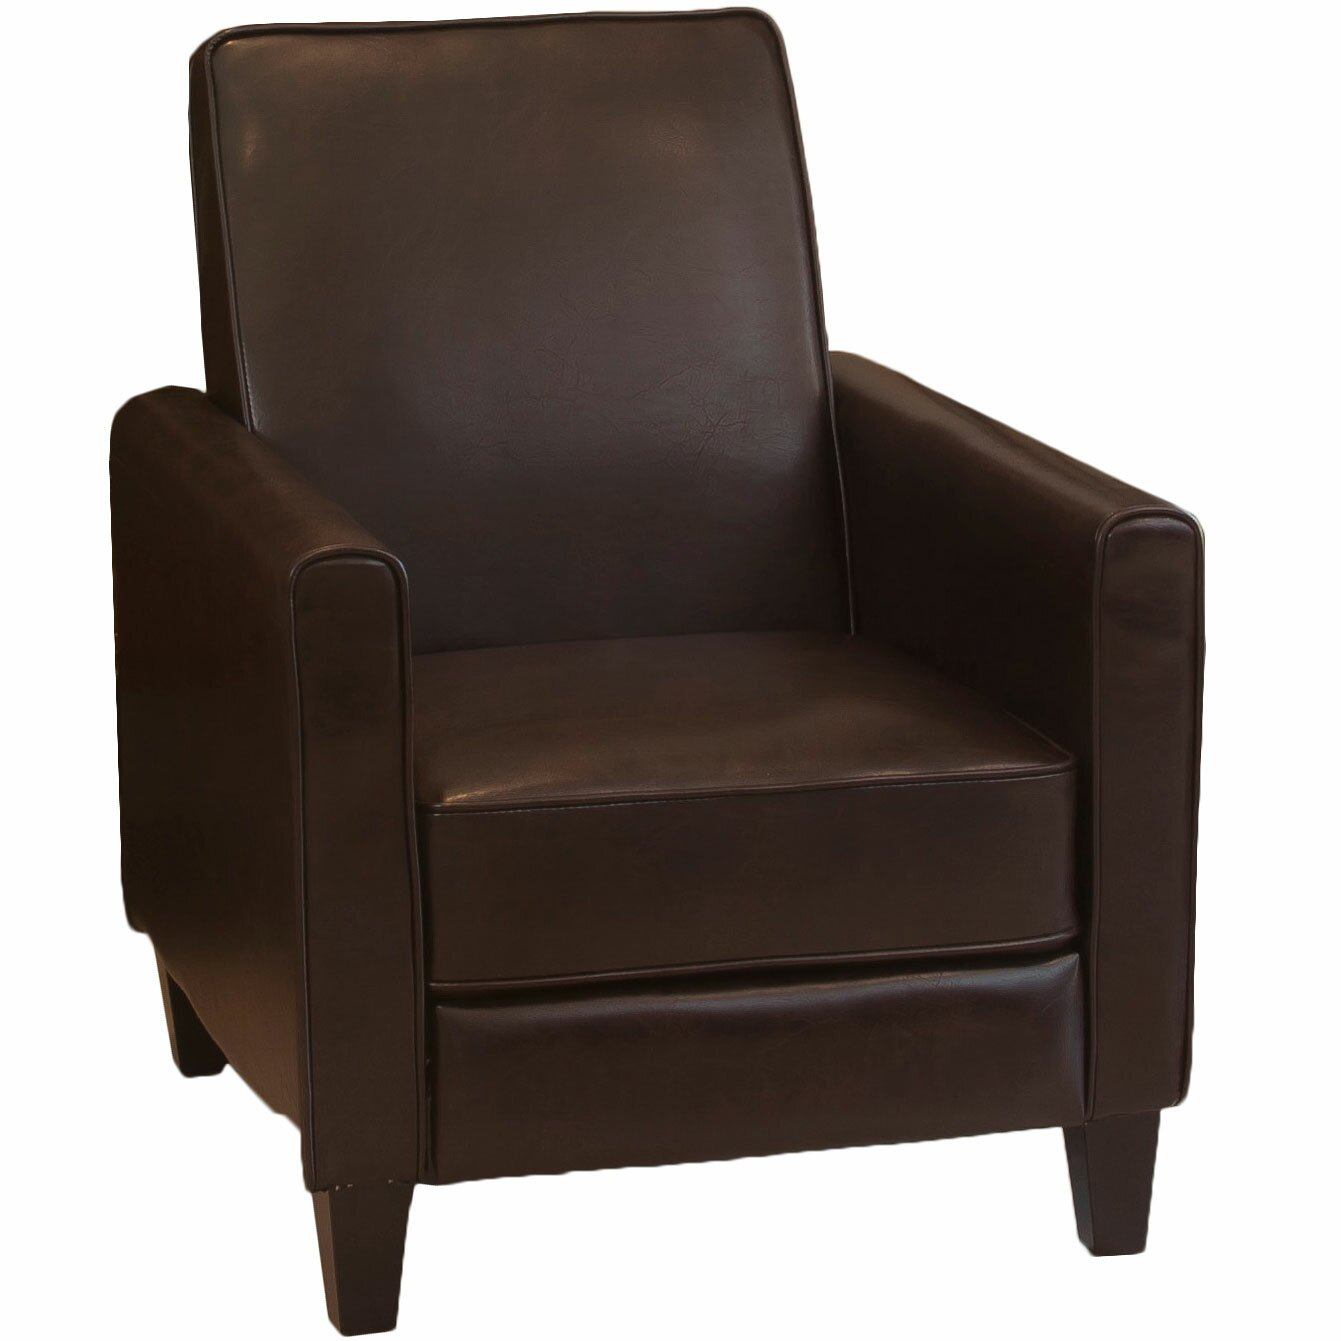 Club chair recliner - Lana Reclining Club Chair